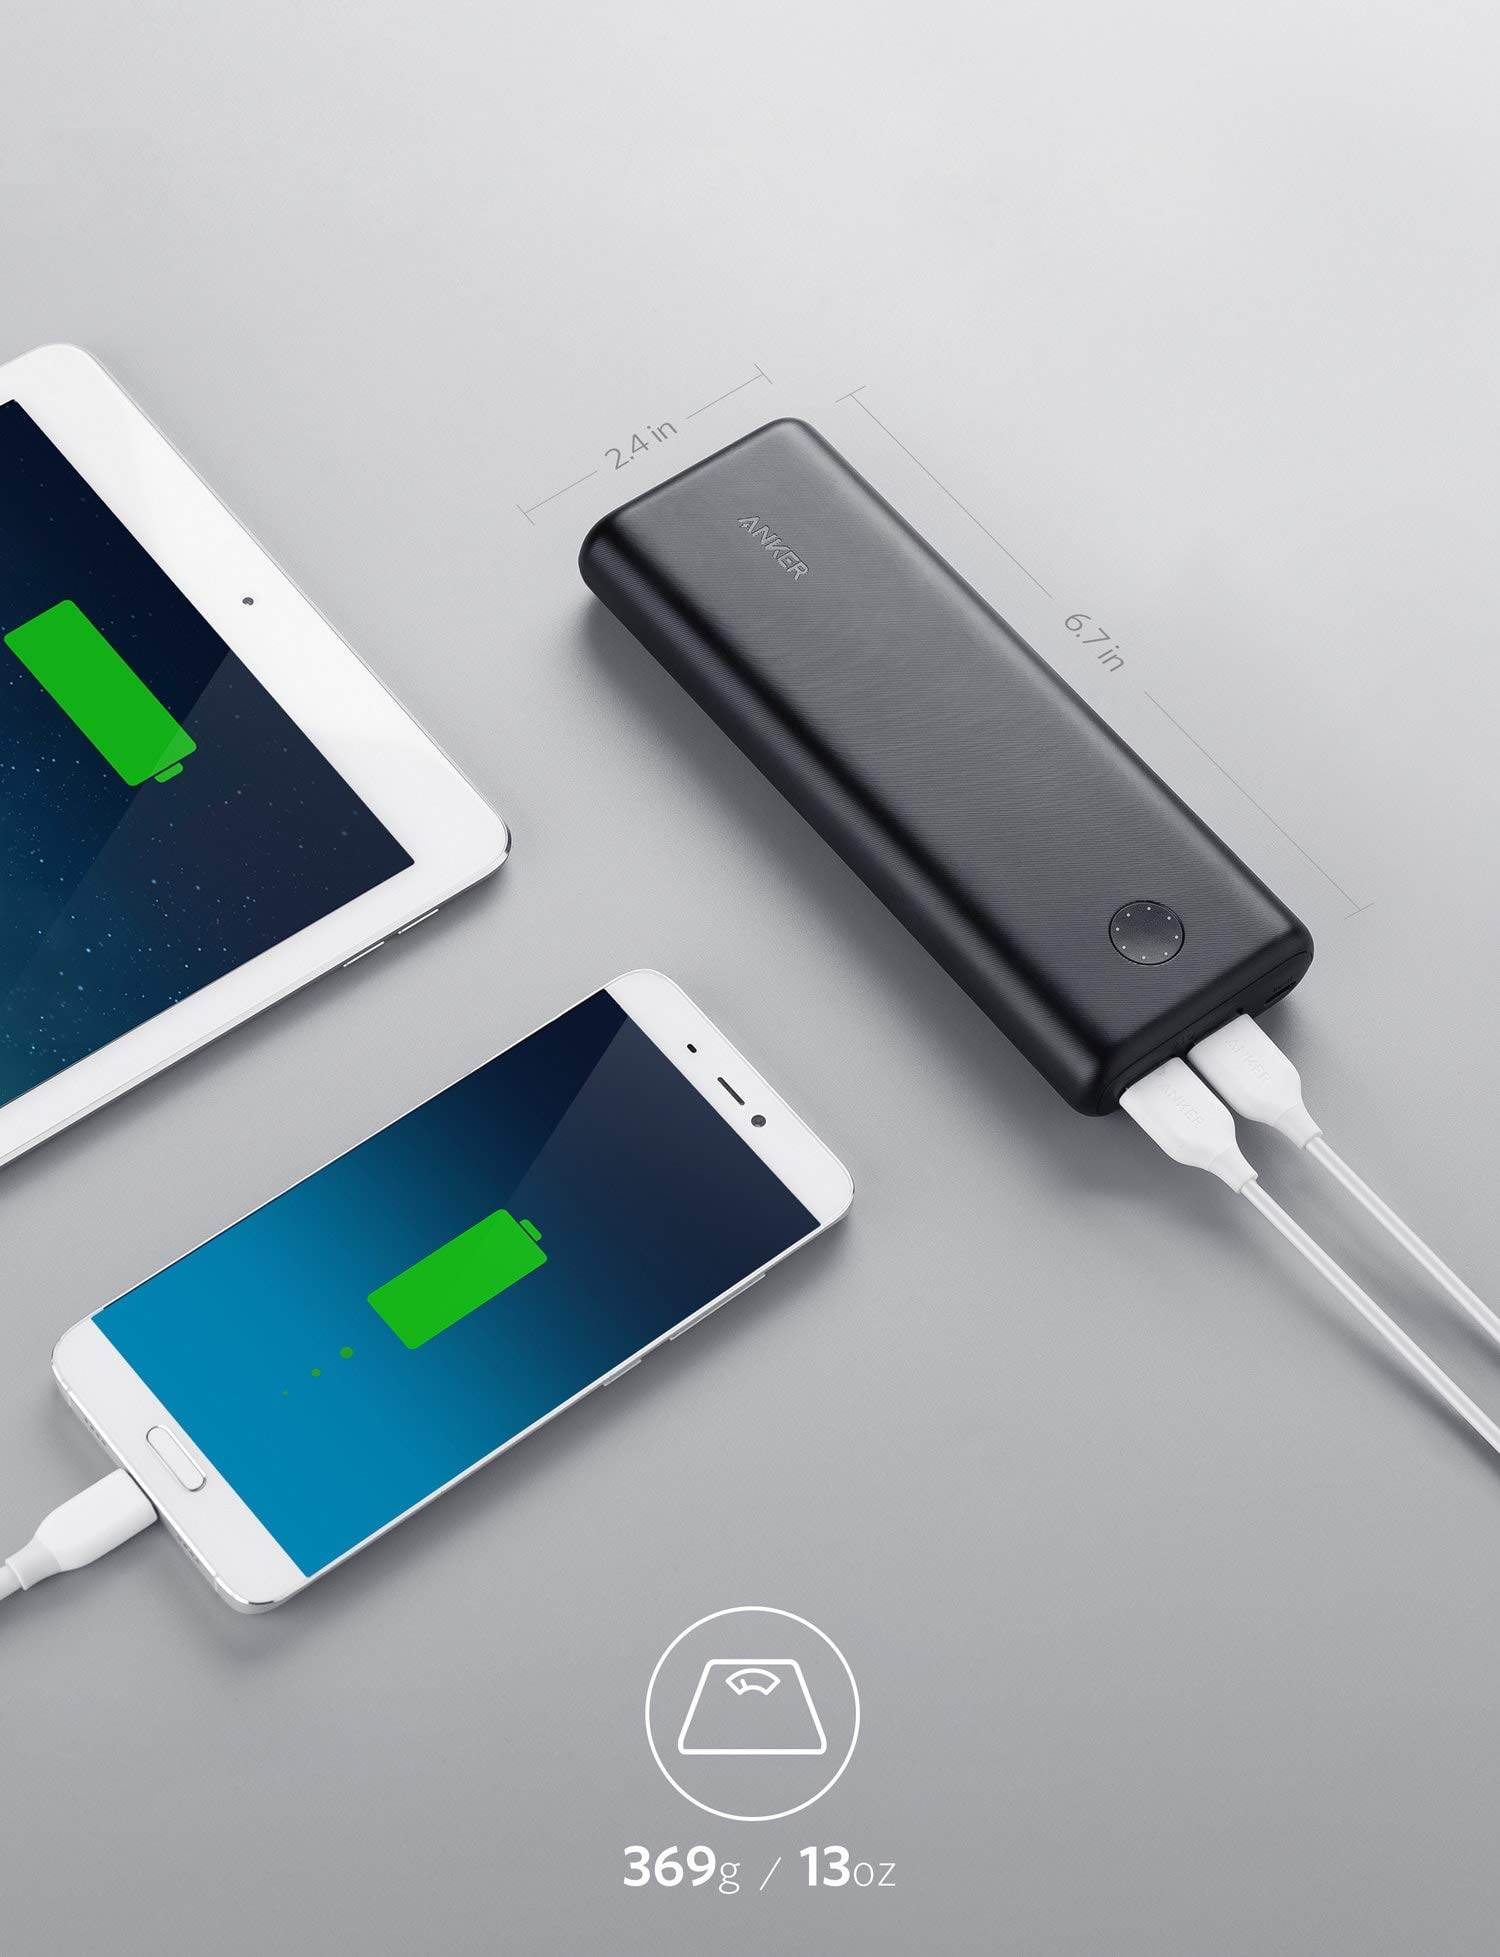 Anker PowerCore II 20000, 20100mAh Portable Charger with Dual USB Ports, PowerIQ 2.0 (up to 18W Output) Power Bank, Fast Charging for iPhone, Samsung and More (Compatible with Quick Charge Devices) by Anker (Image #7)